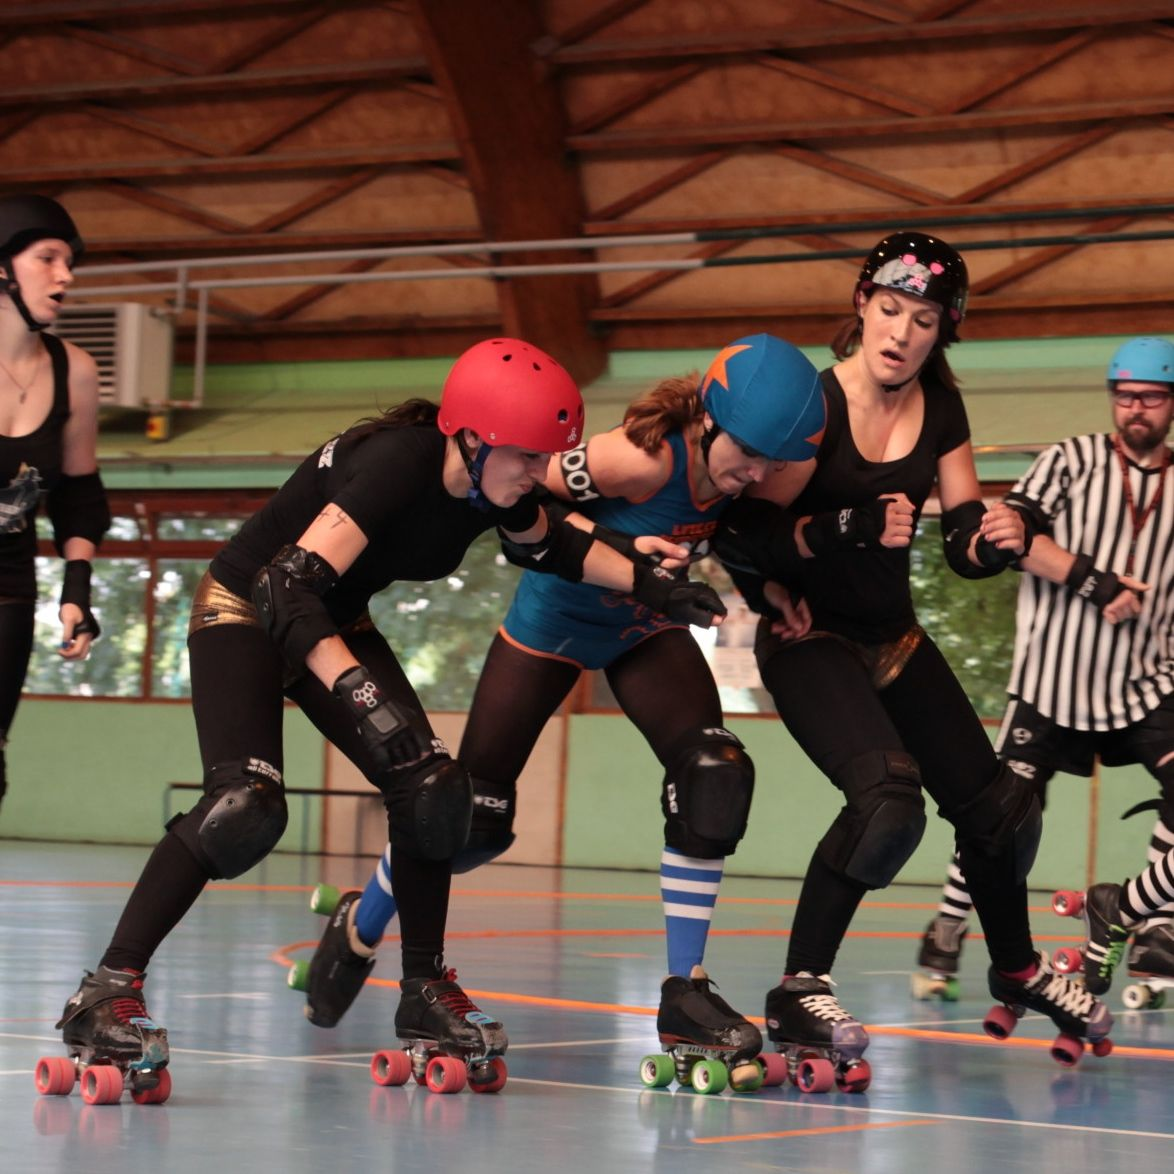 Roller skating rink queen anne - Explore Lutece Roller Derby And More